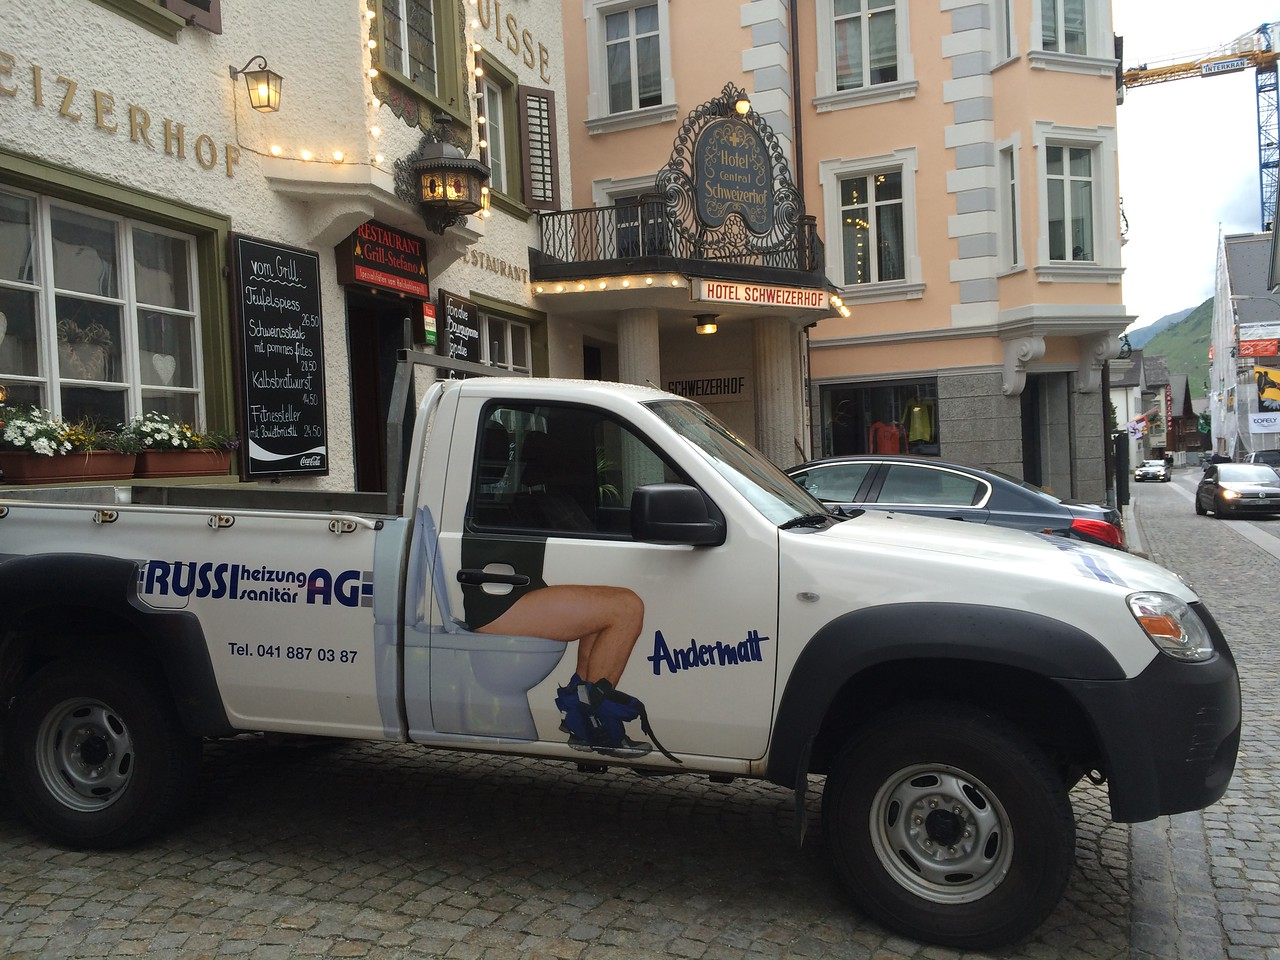 What else would a plumber's truck look like?